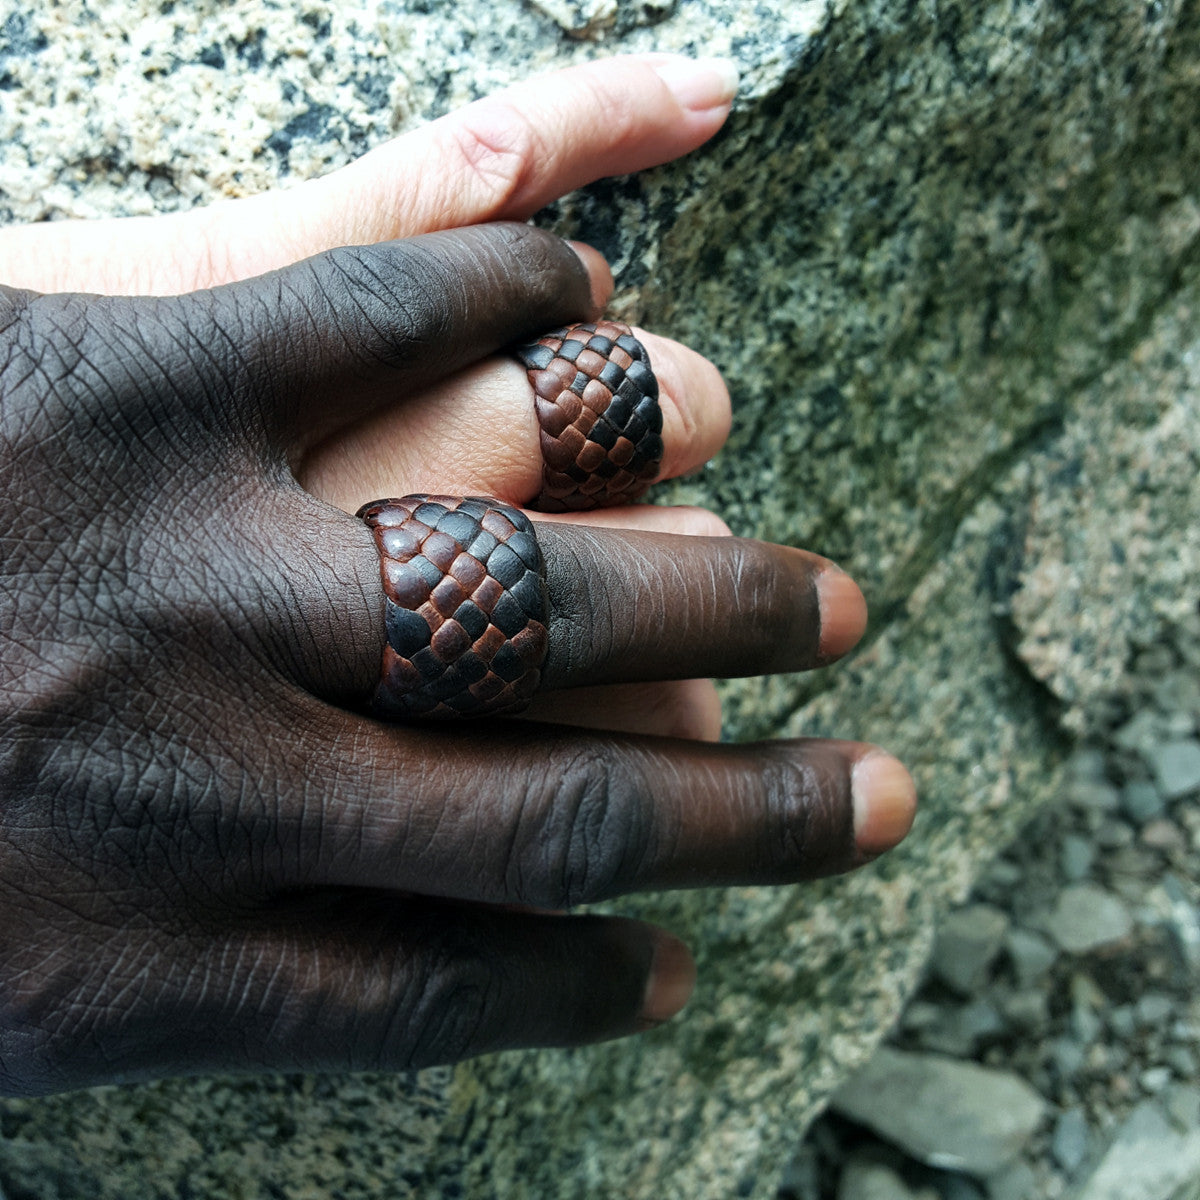 Kama Braided Leather Rings on hands